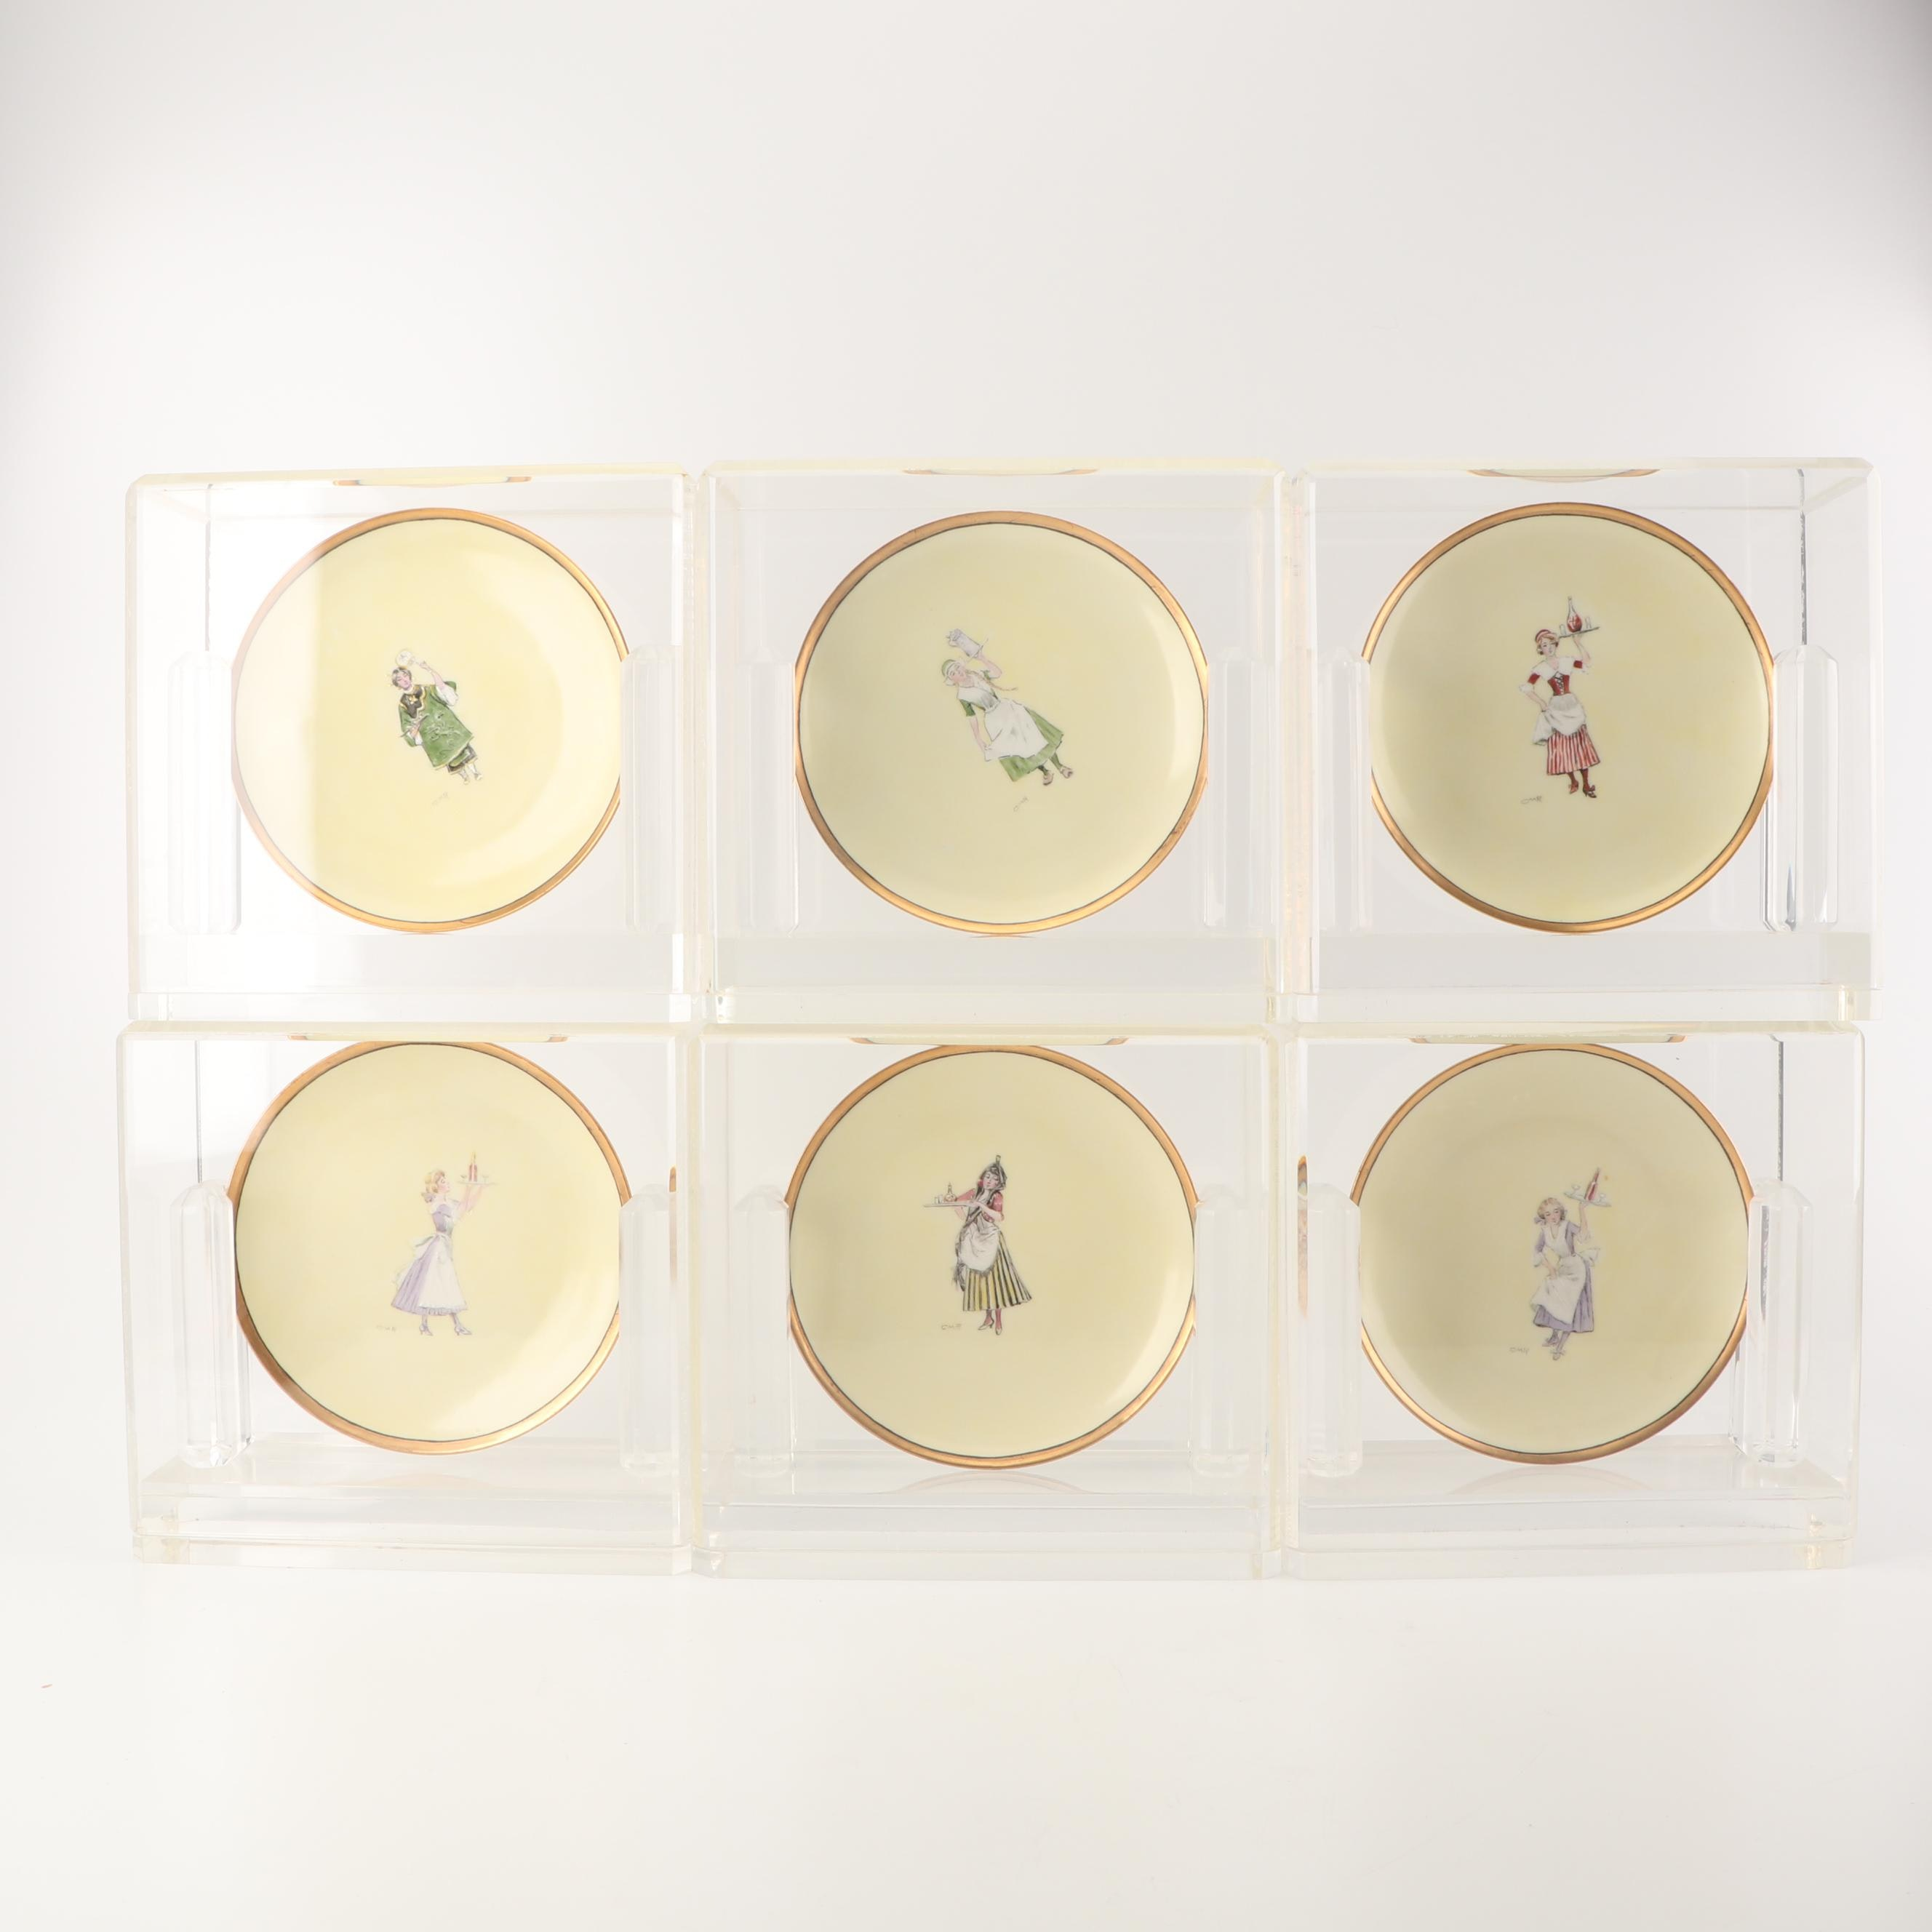 Haviland Limoges Hobbyist Painted Porcelain Plates in Display Cases